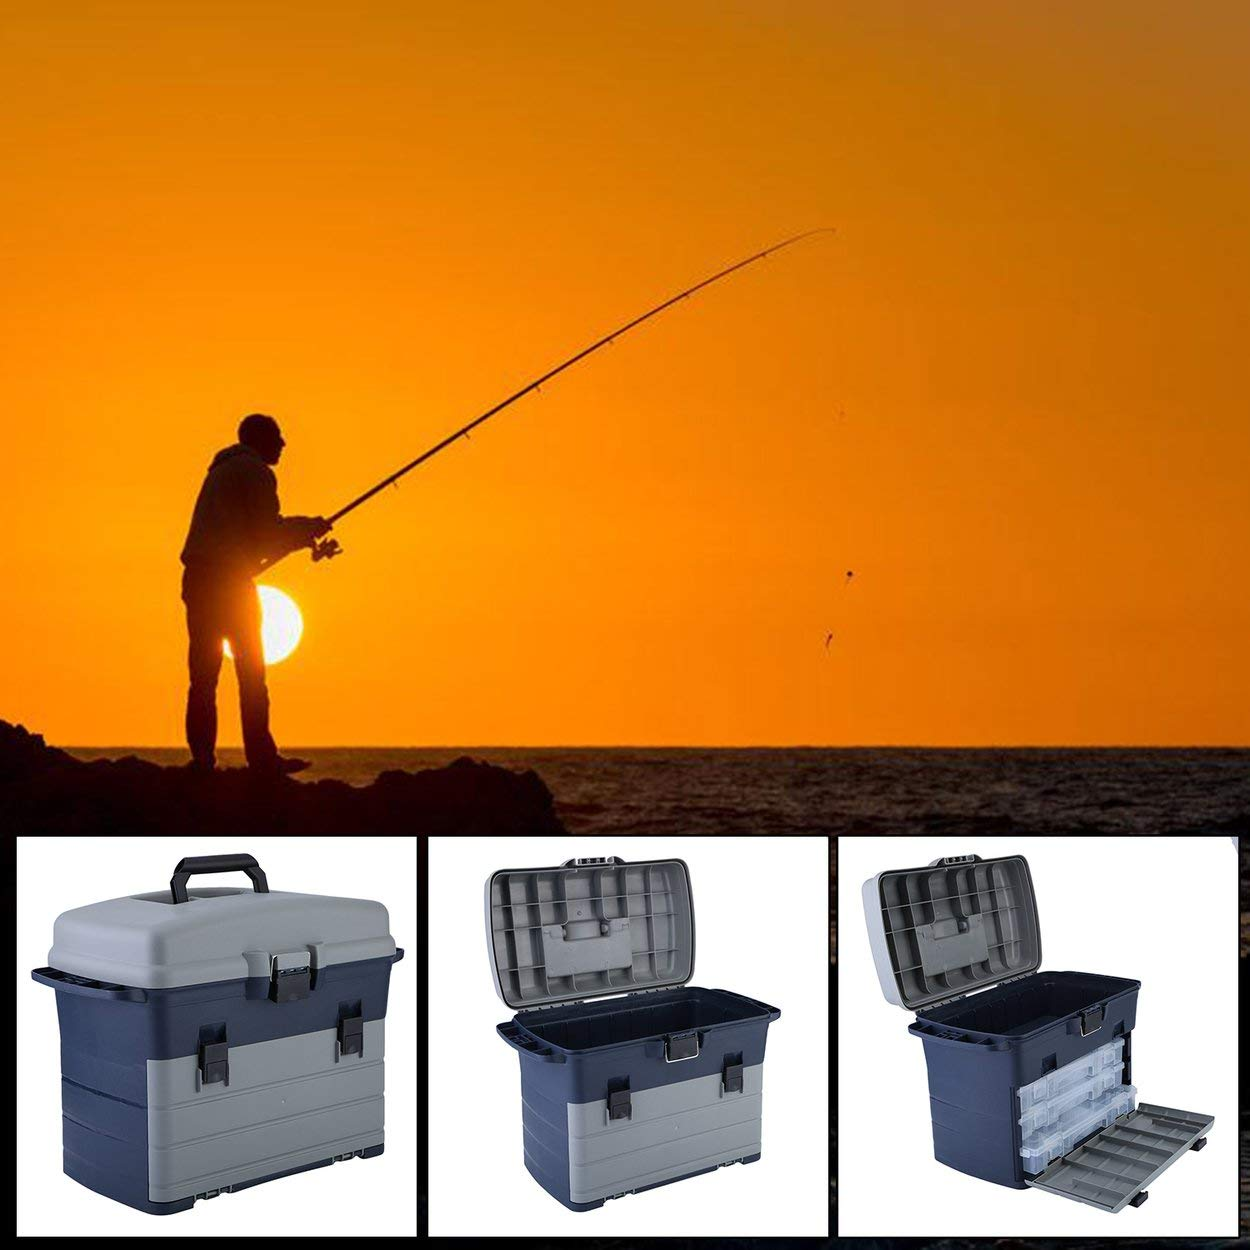 Dasny Heavy Duty Fishing Tackle Box 3 Layers Removable Trays Storage Organizer Case Tool Fishing Accessories Lures Bait Storage Box by Dasny (Image #7)